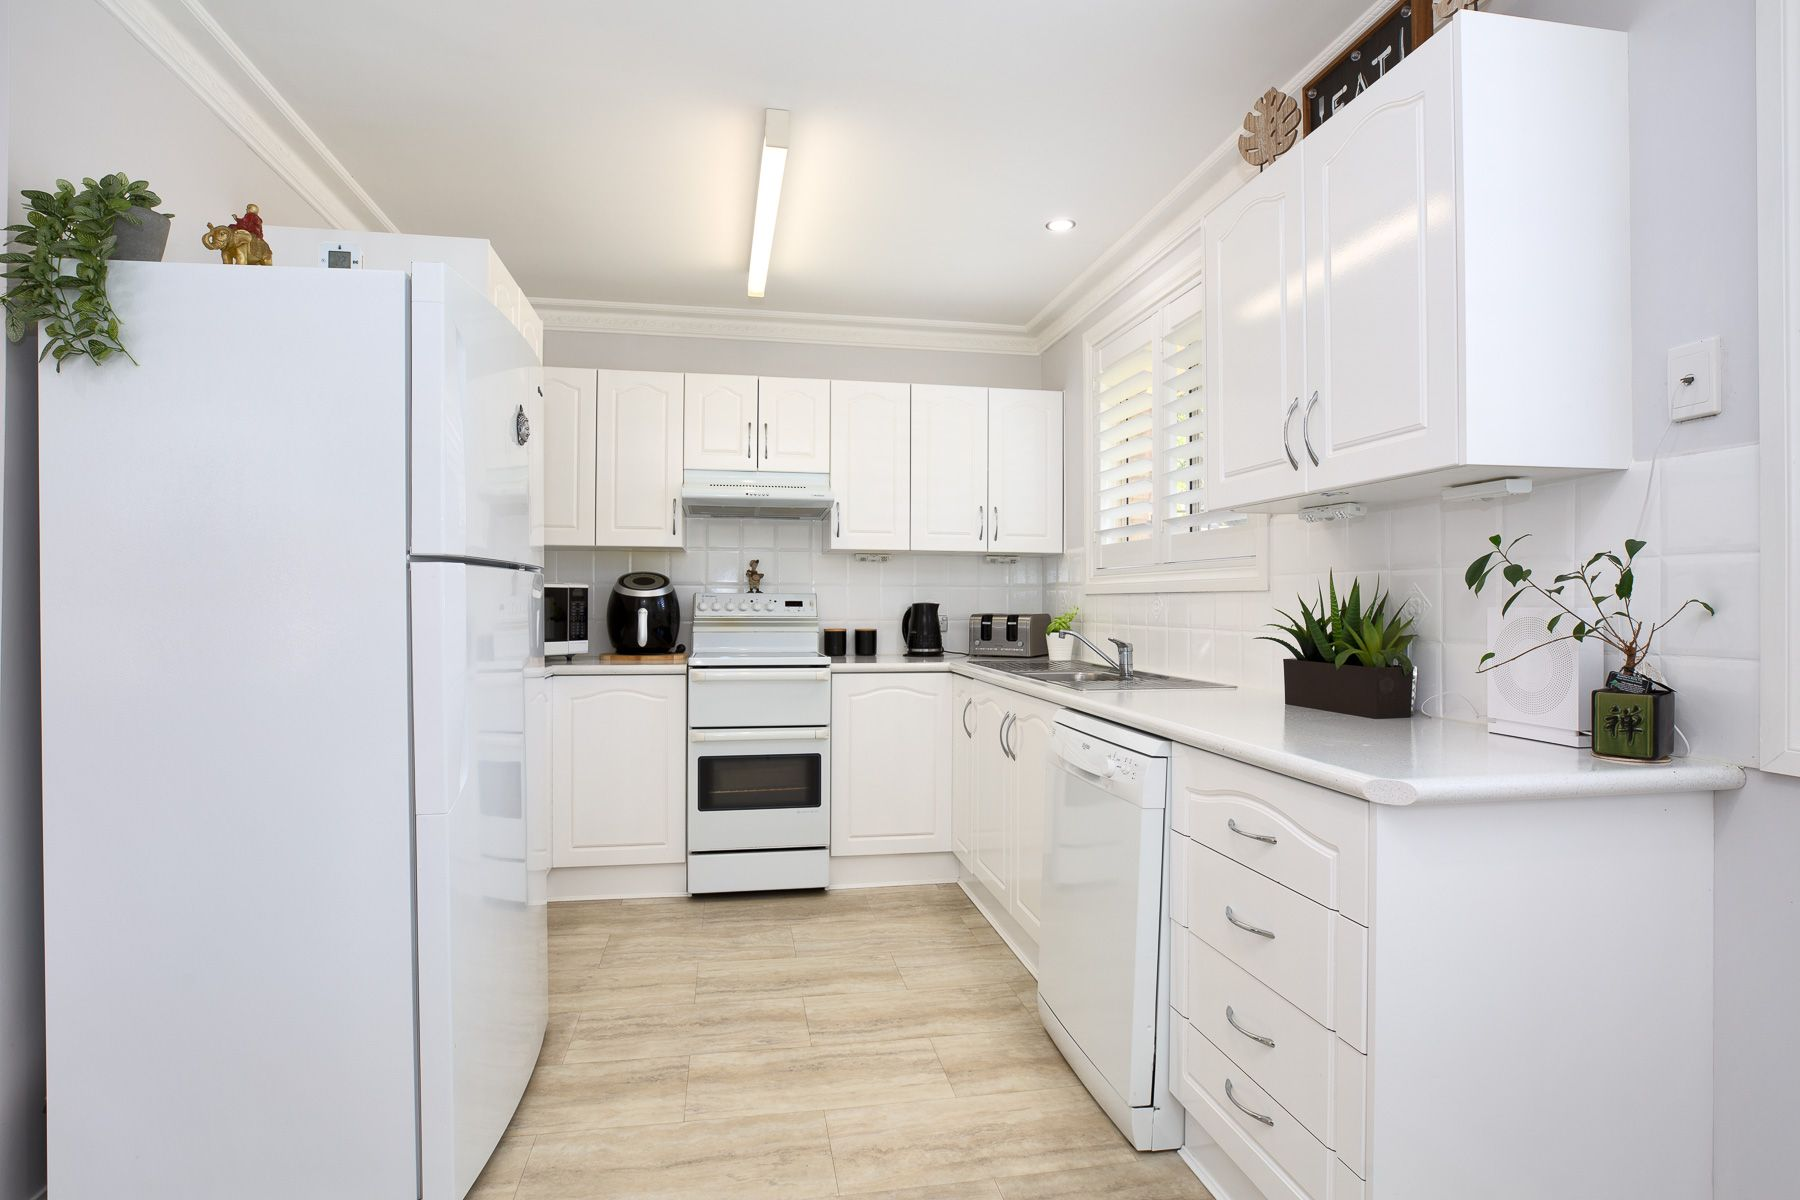 76B Violet Town Road, Floraville, NSW 2280